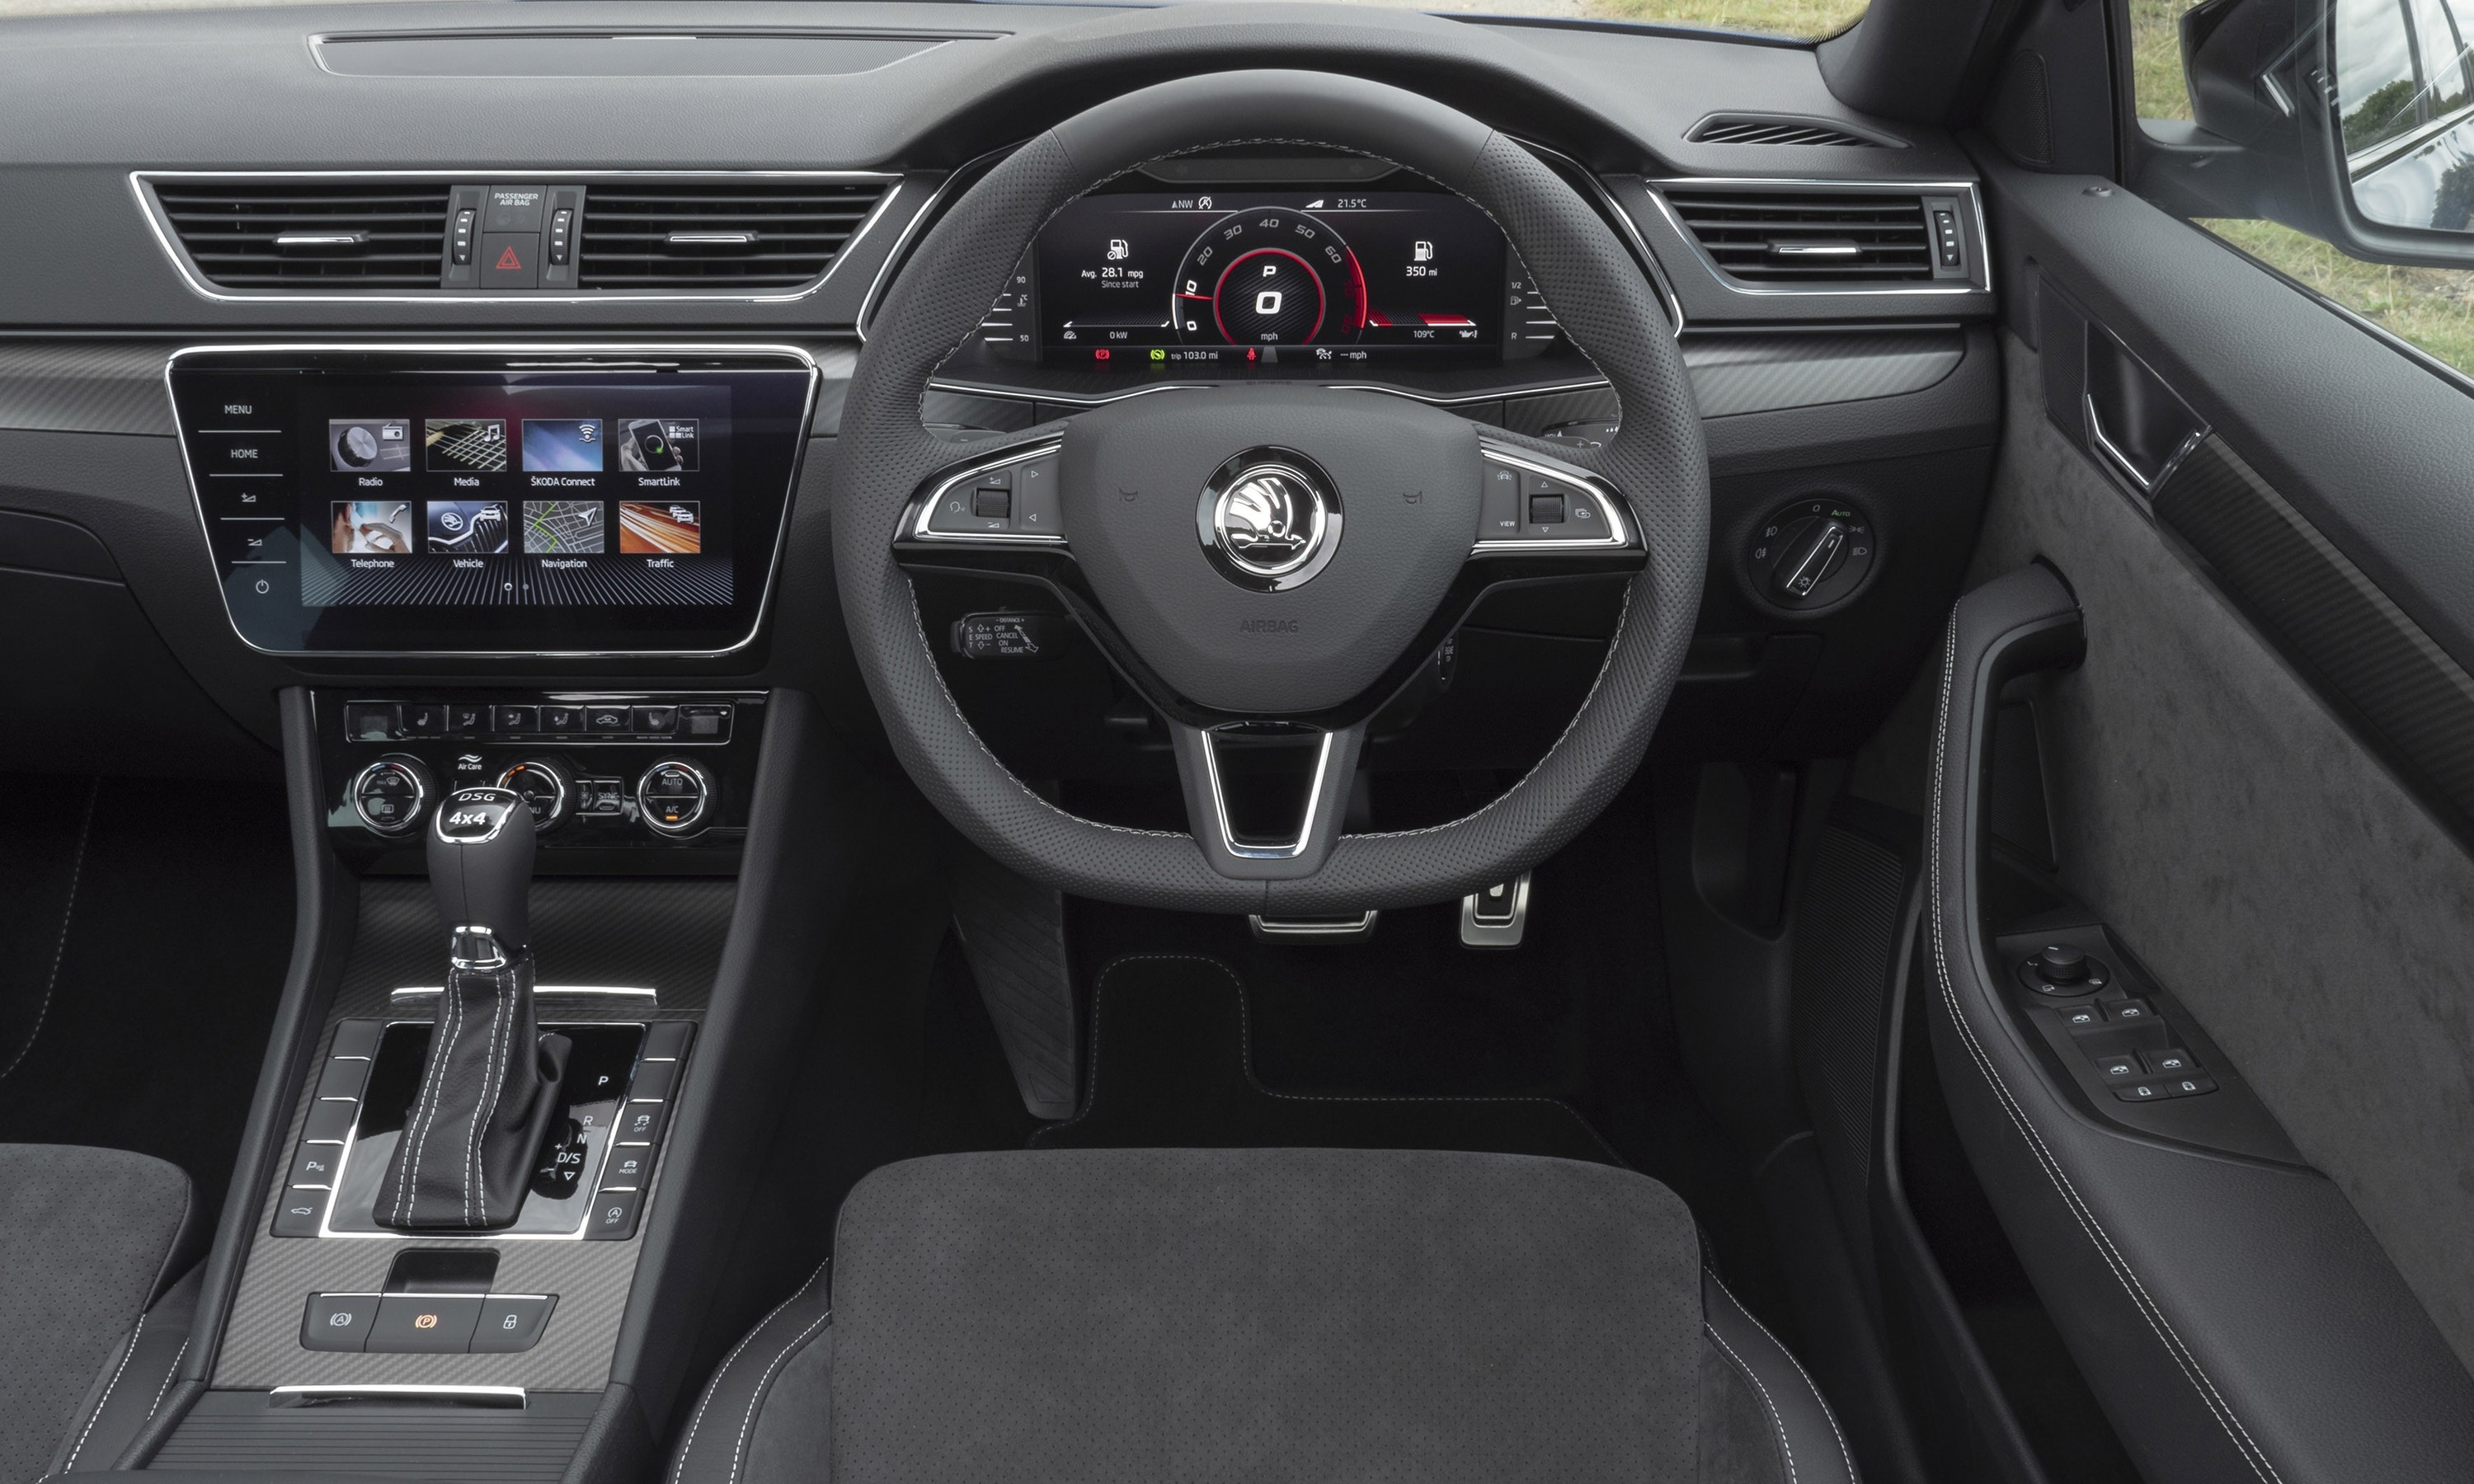 Interior of the Skoda Superb